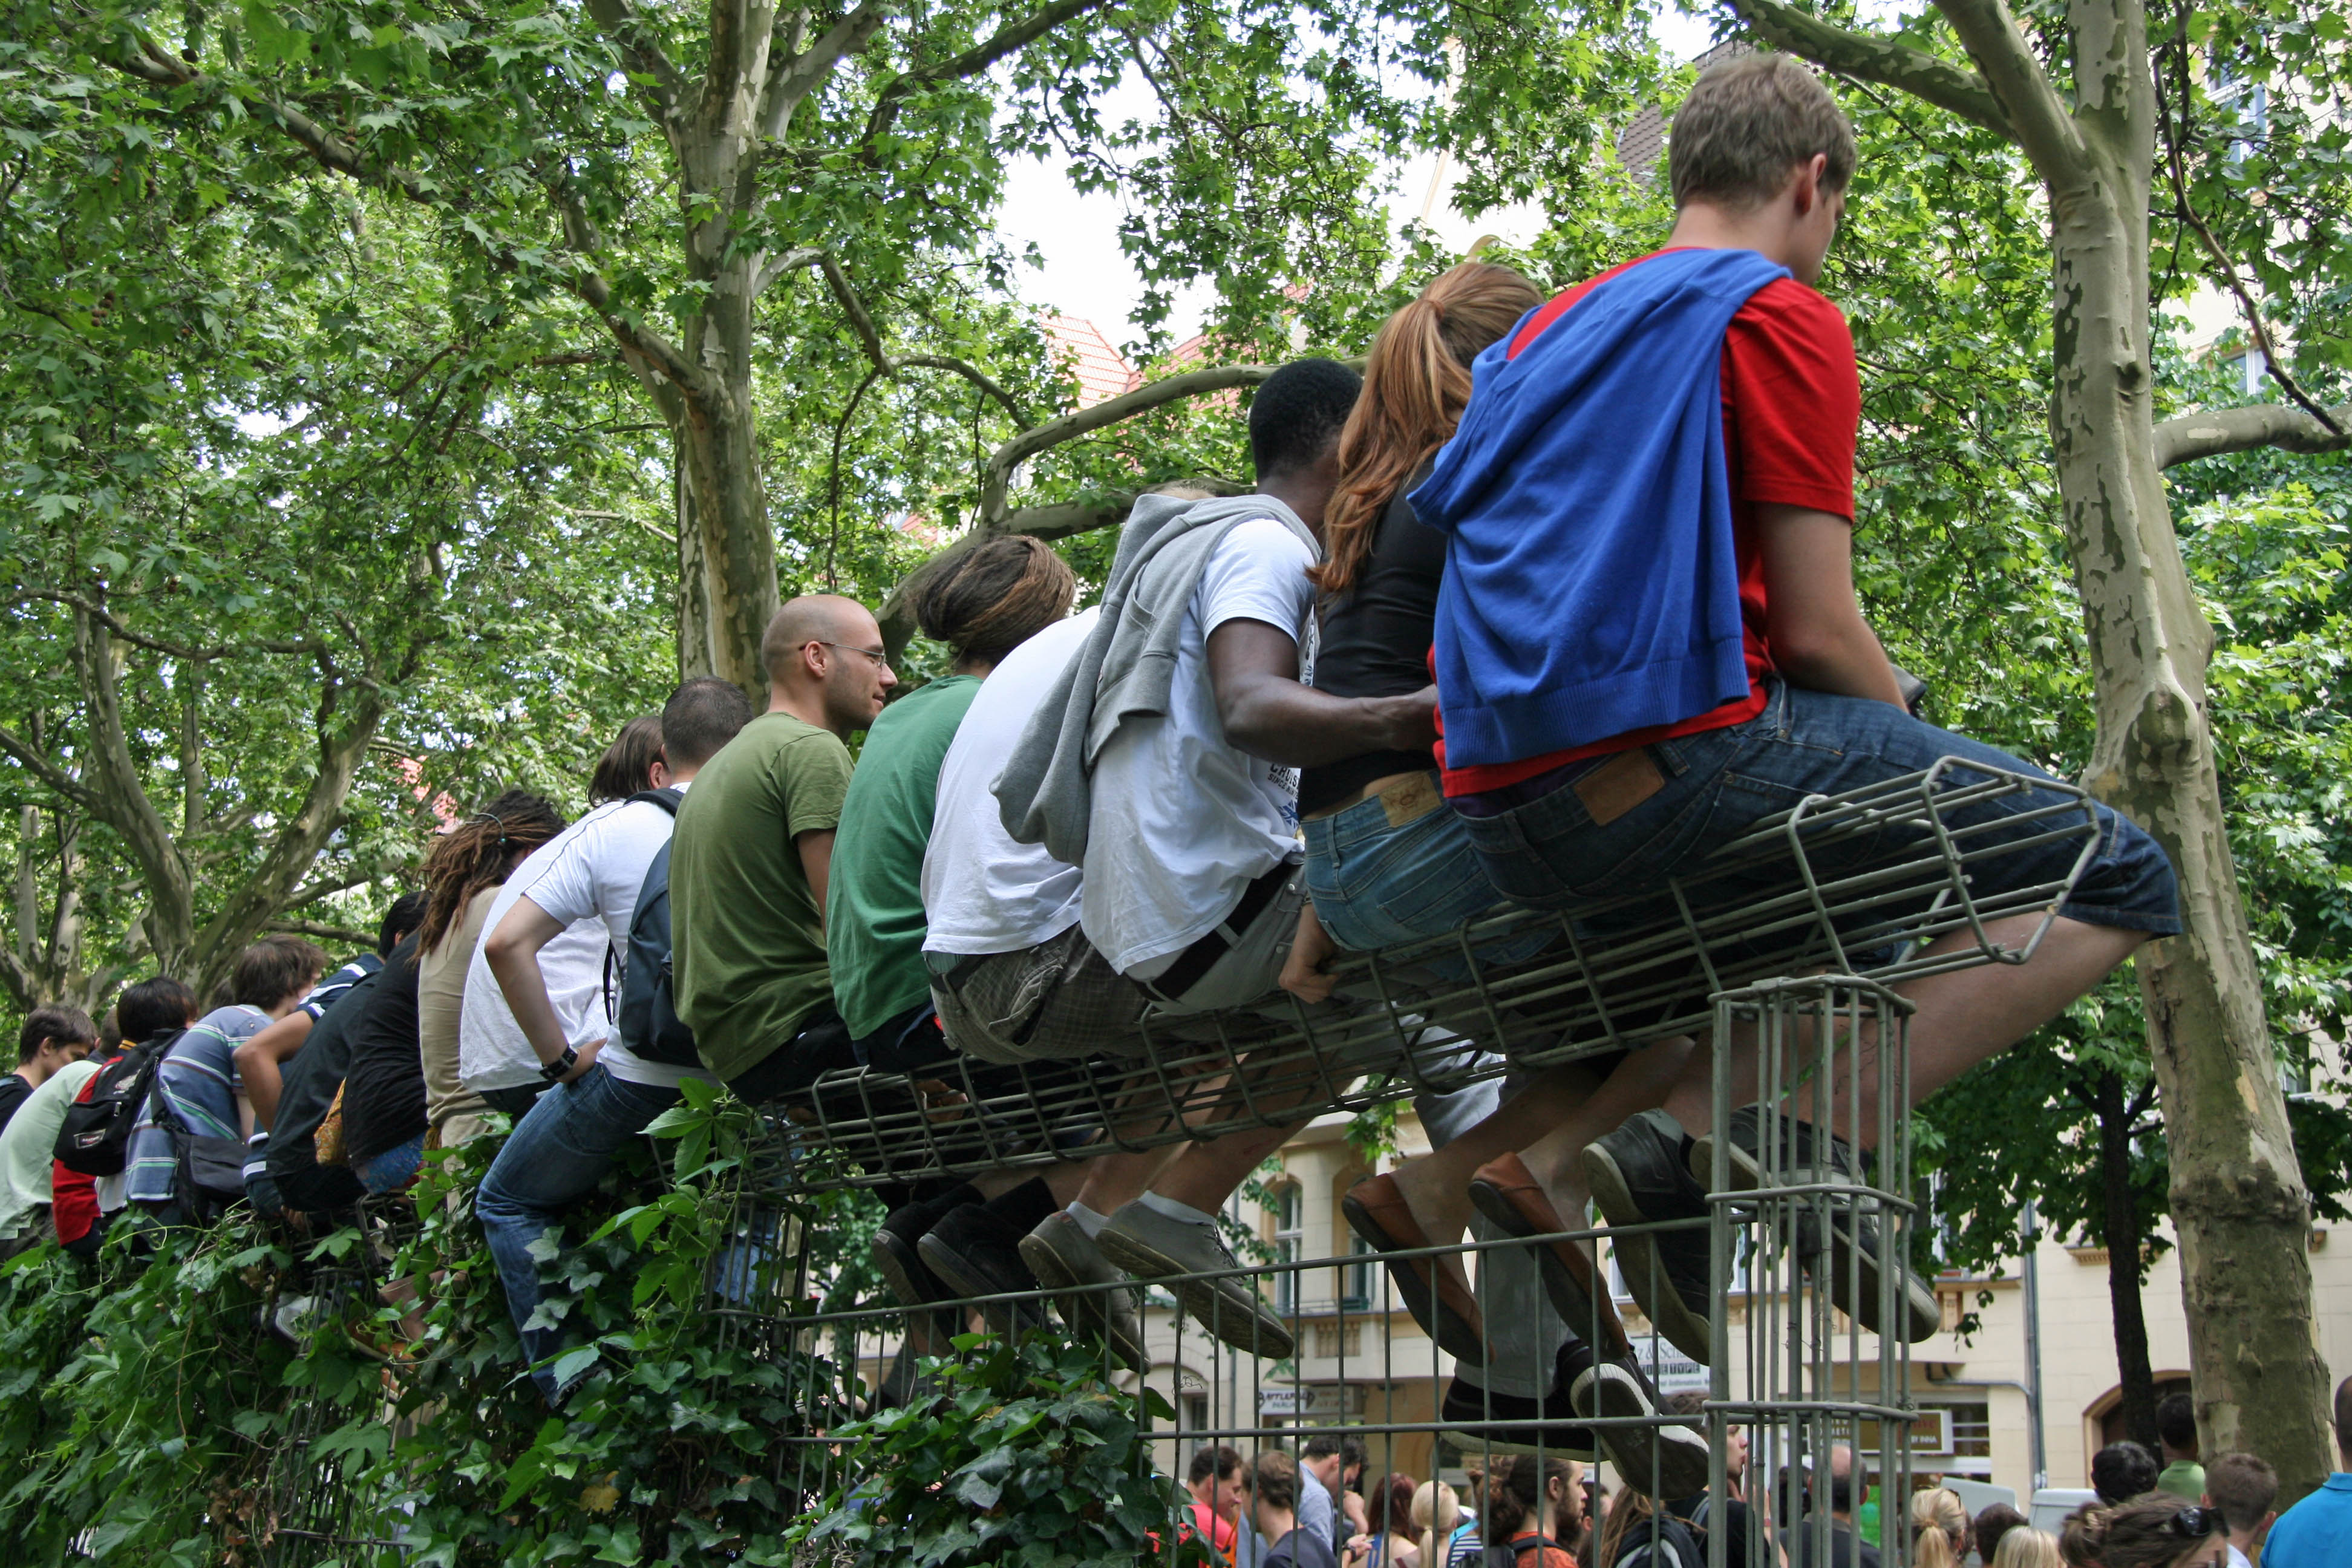 Carnival goers climb a trellis for a better view of the parade at Karneval der Kulturen (Carnival of Cultures) in Berlin